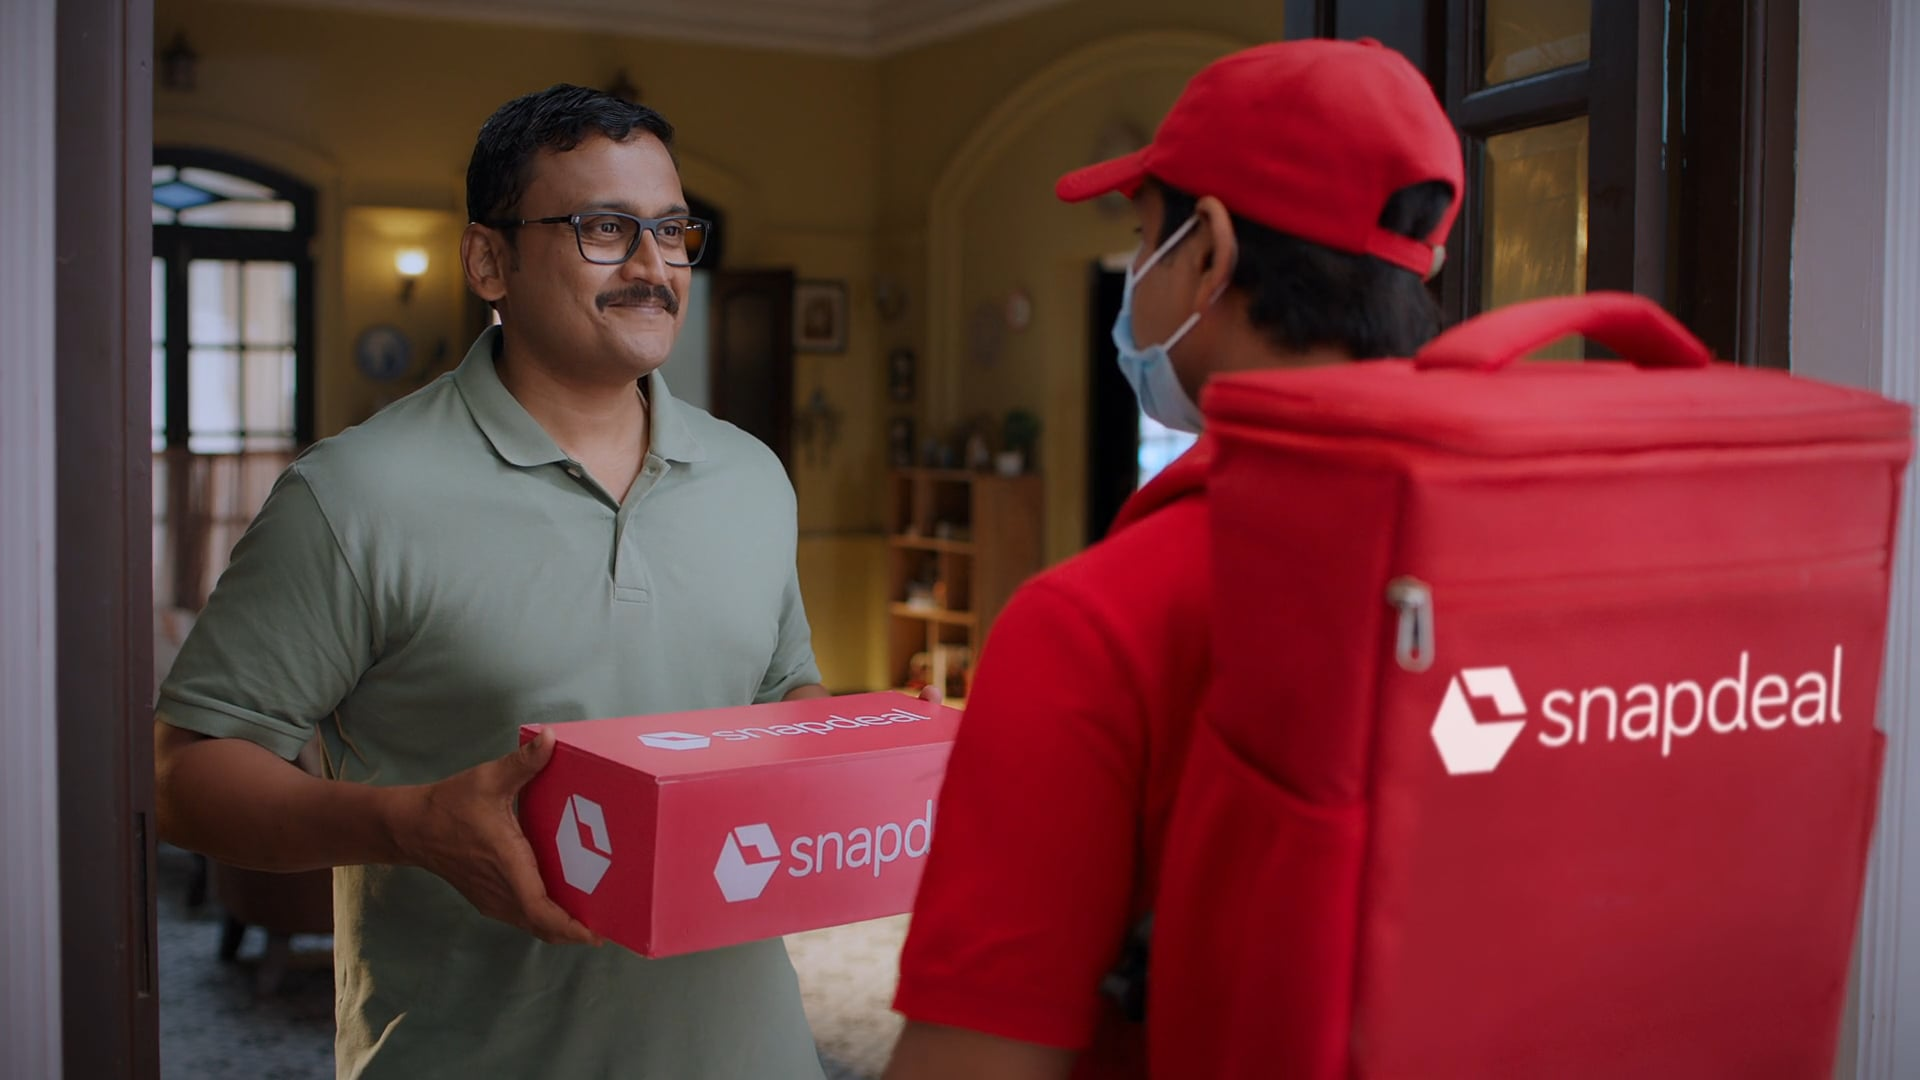 Snapdeal | Commercial